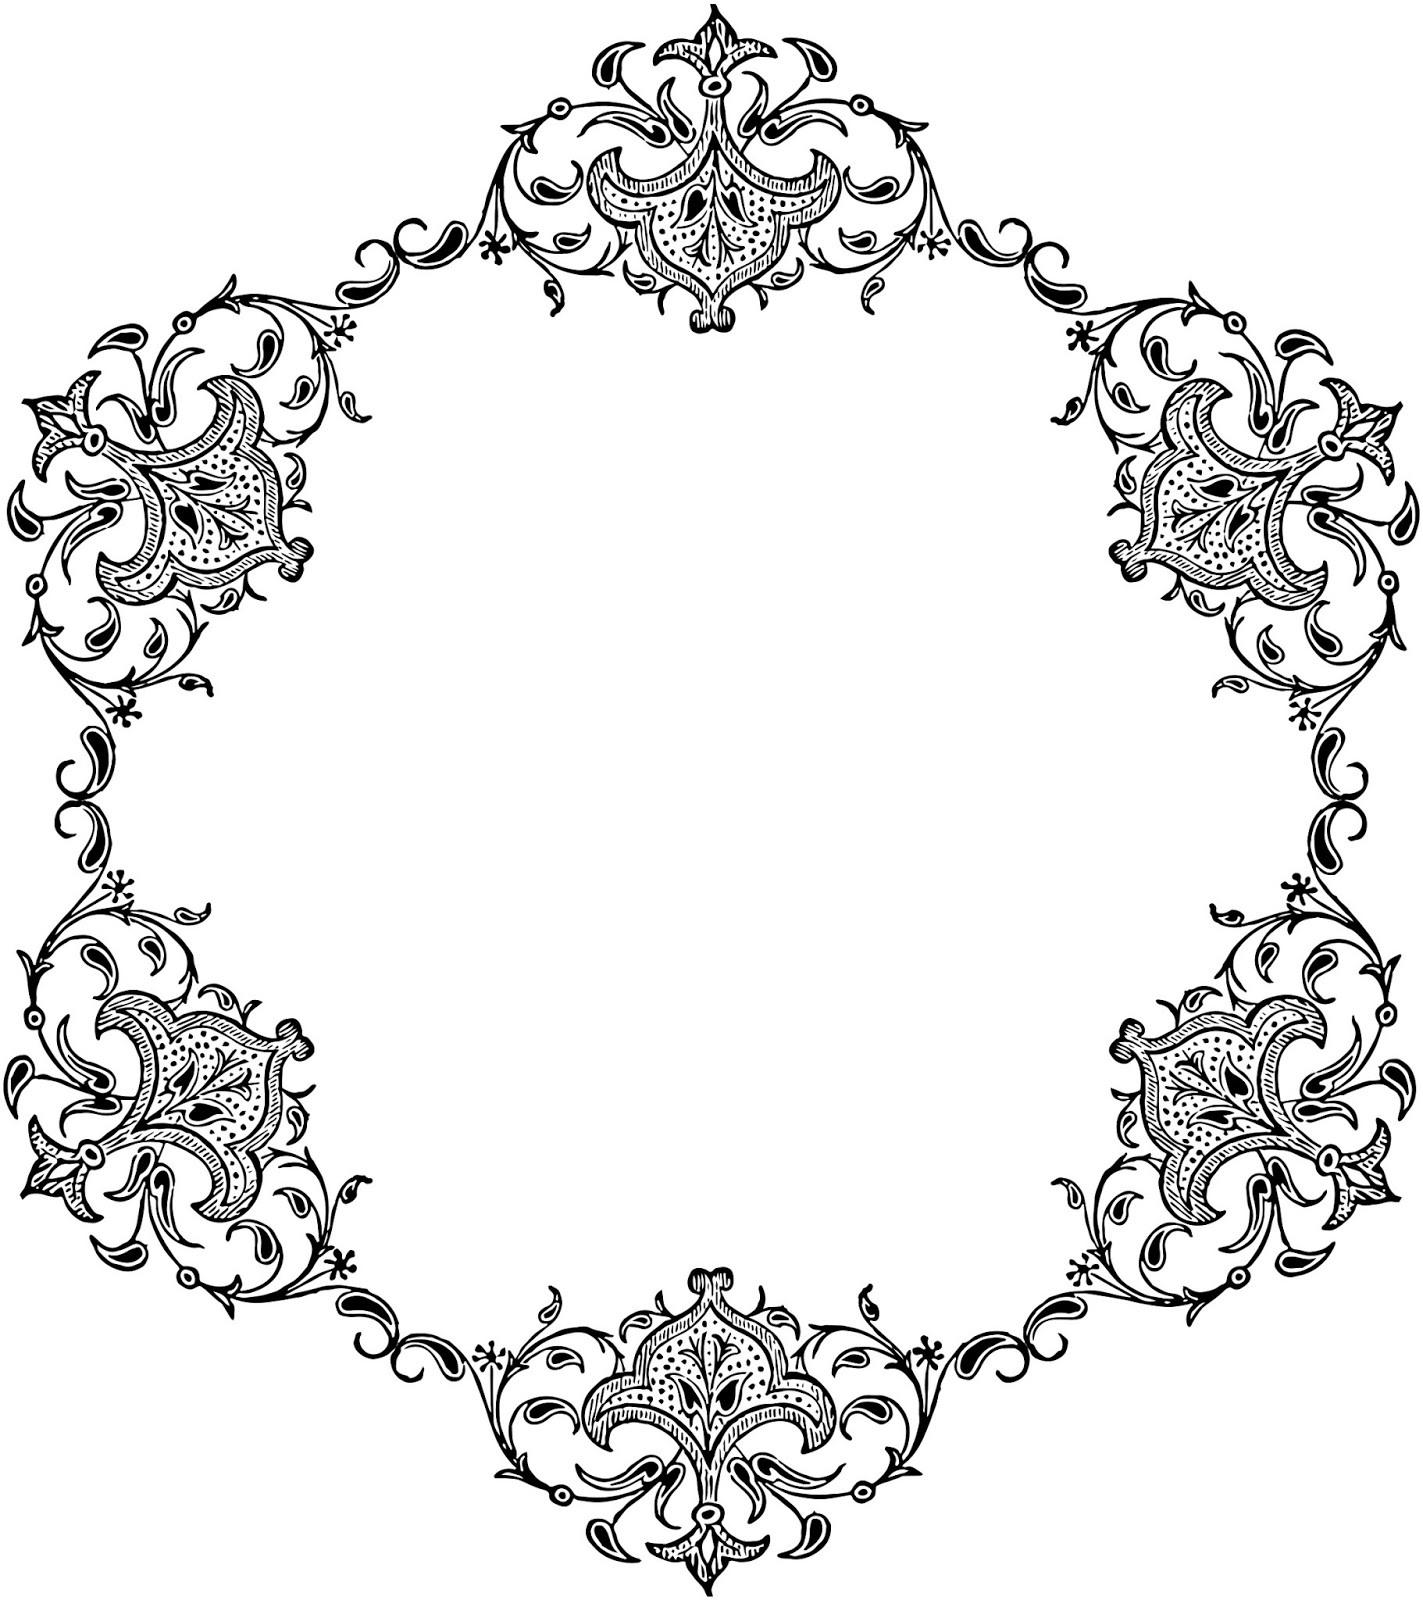 microsoft clip art decorative lines - photo #44